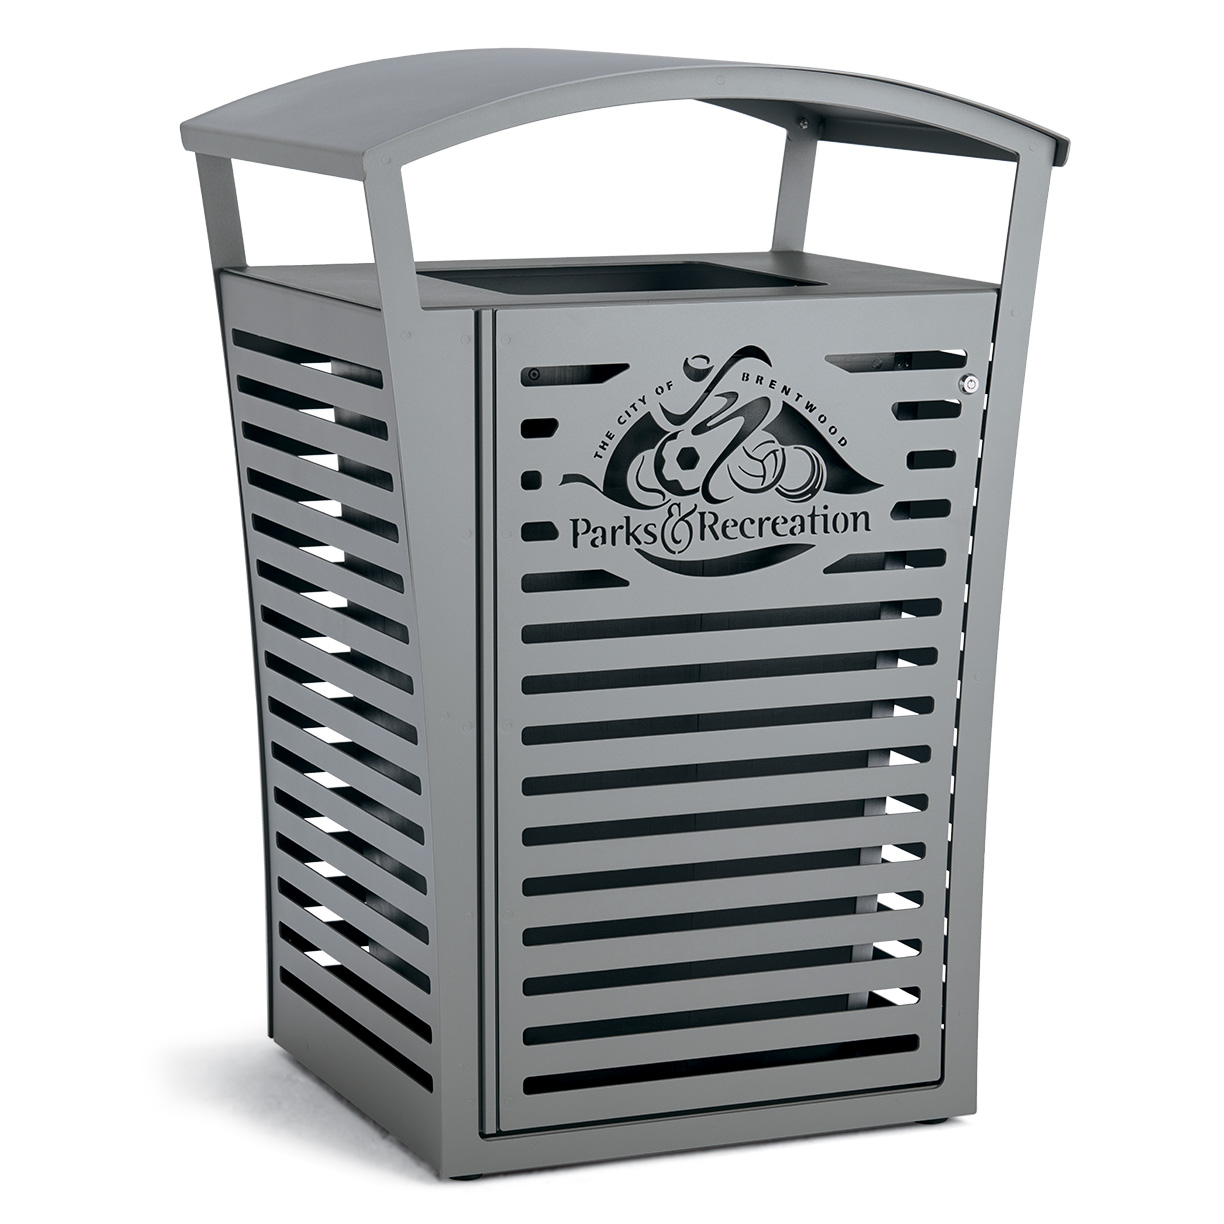 LEX45-CUST Exposition Collection 45 Gallon Receptacle with Custom Logo Side Door